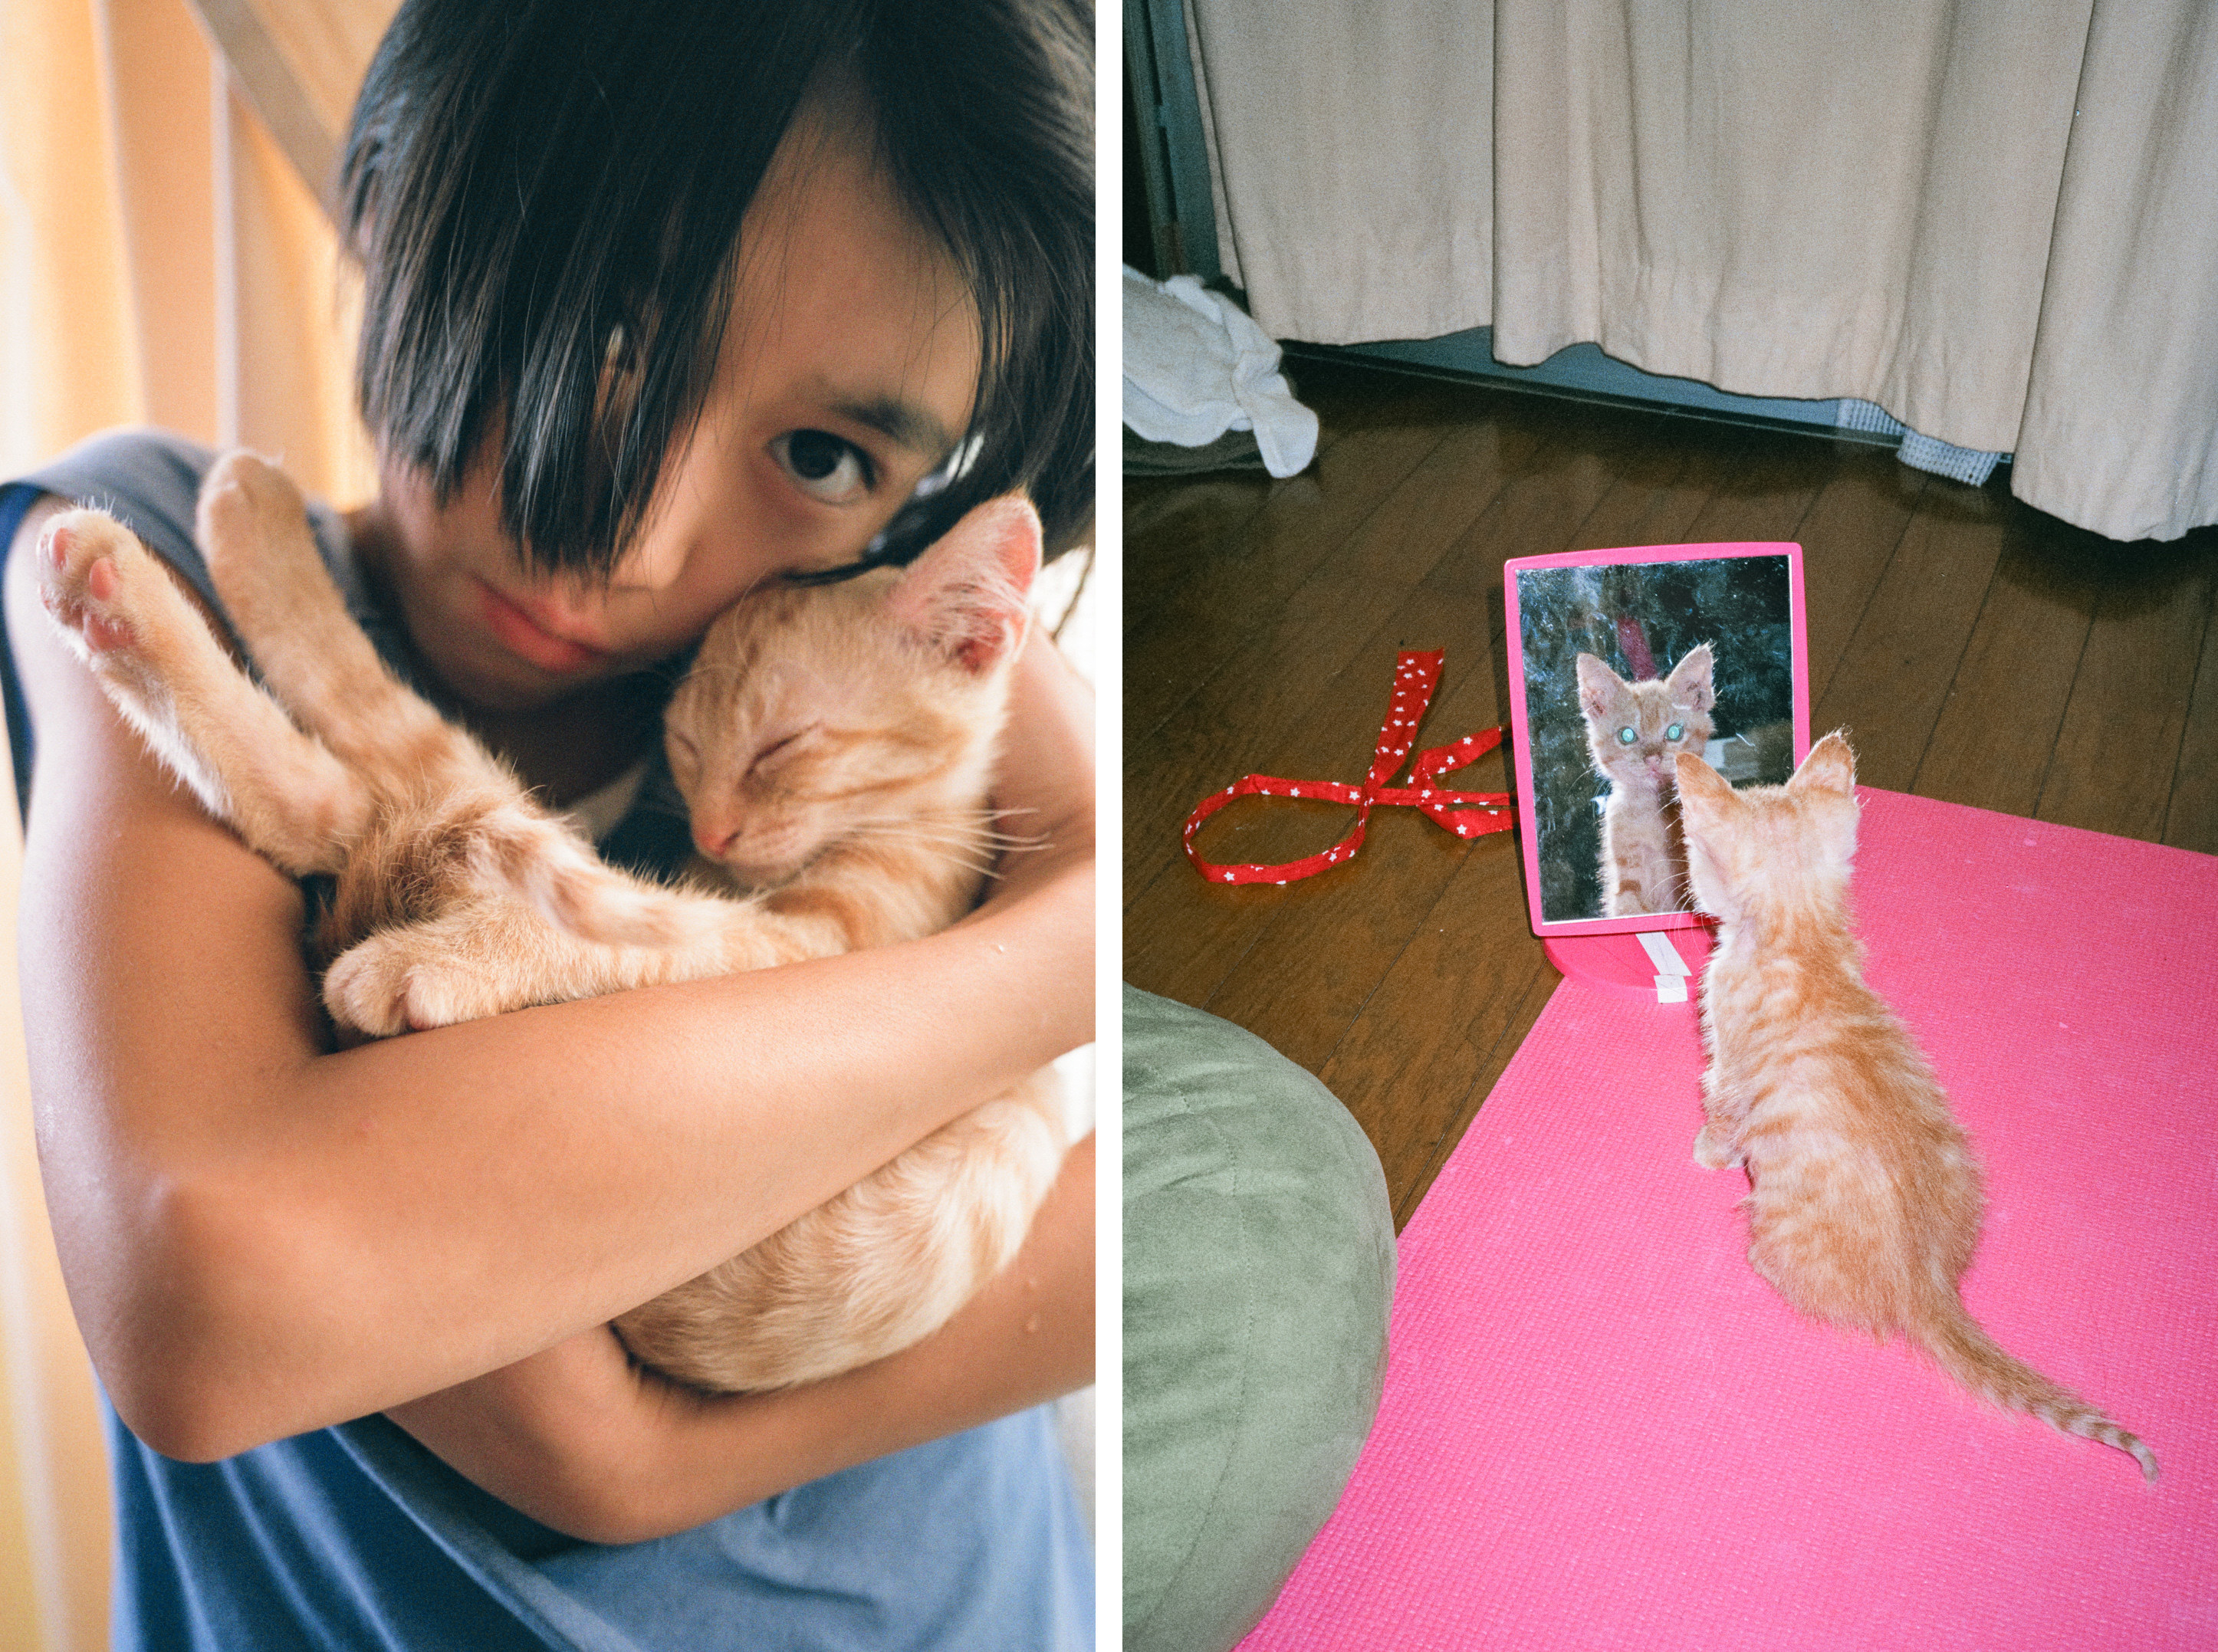 The photographer's daughter with a cat on the left, and the cat staring in a mirror on the right